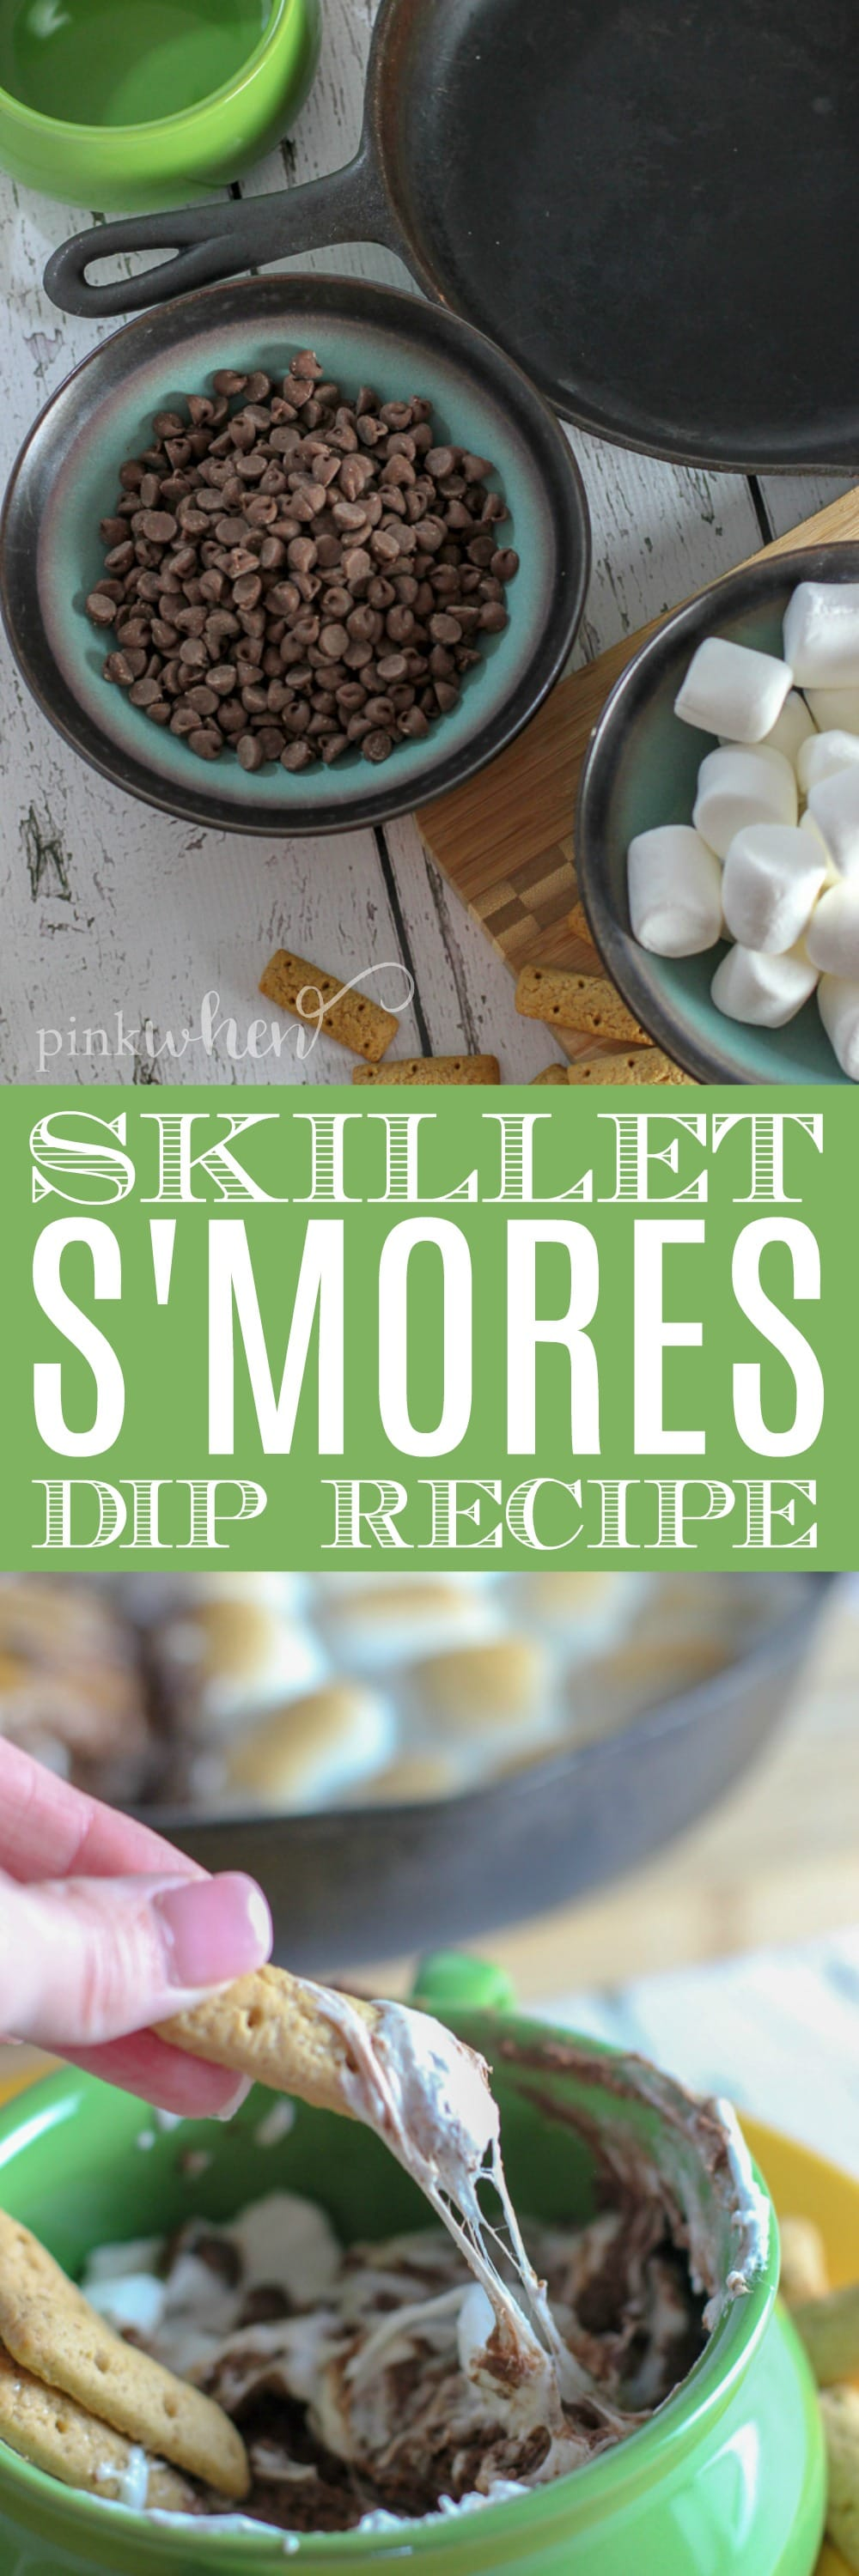 This skillet S'mores Dip is our new favorite way to make S'mores. It's quick and easy, and easily re-heatable. Dip with graham crackers, or even apple slices. It's our favorite dip for the summer!